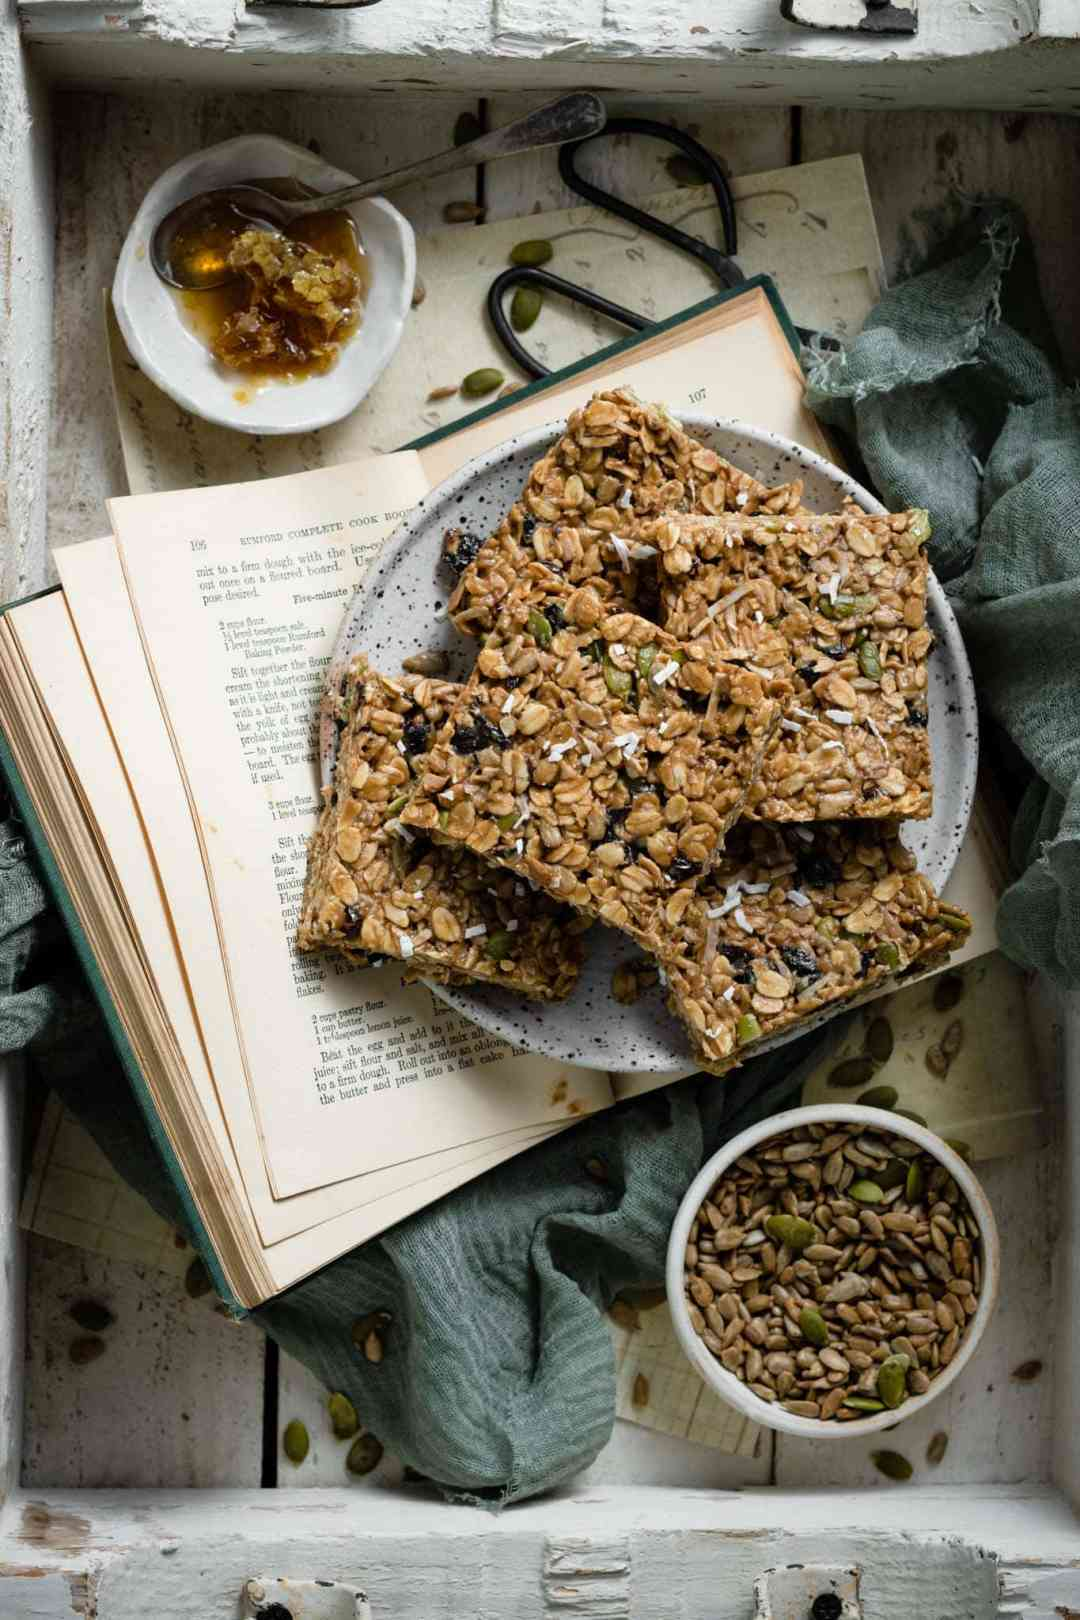 Sliced granola bars with honey and seeds.